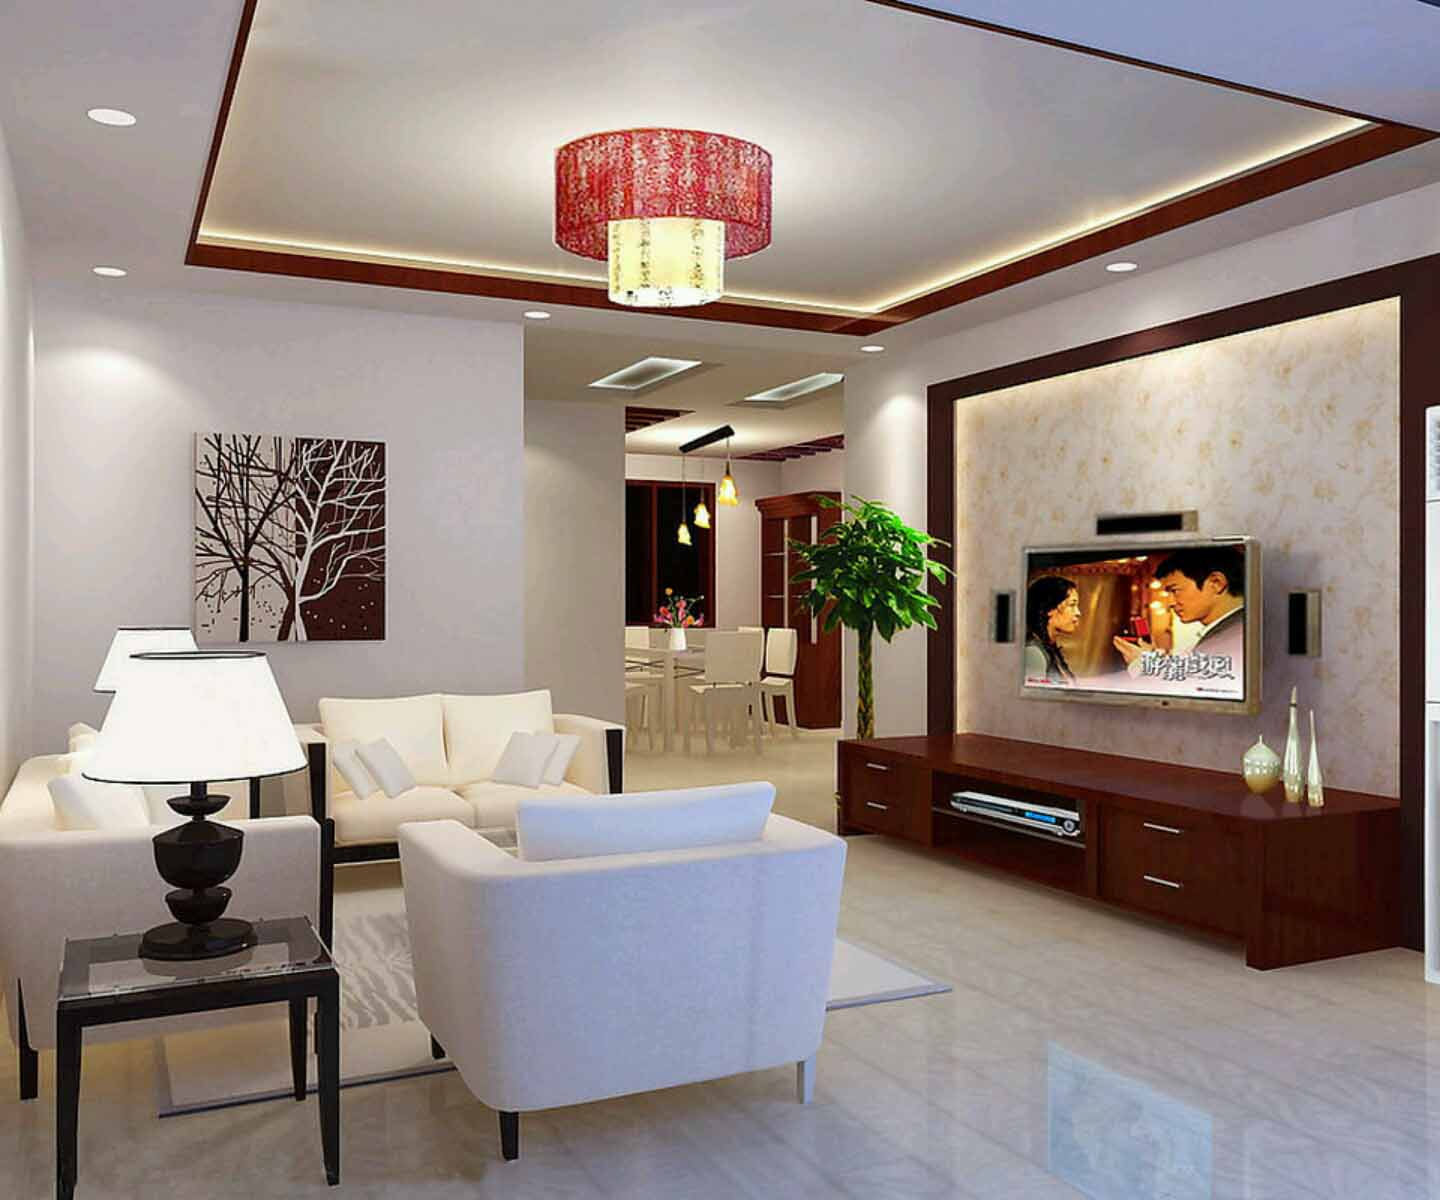 Accent Red Touches for Decorative Ceiling Lamp and Console Table for Living Room Decoration